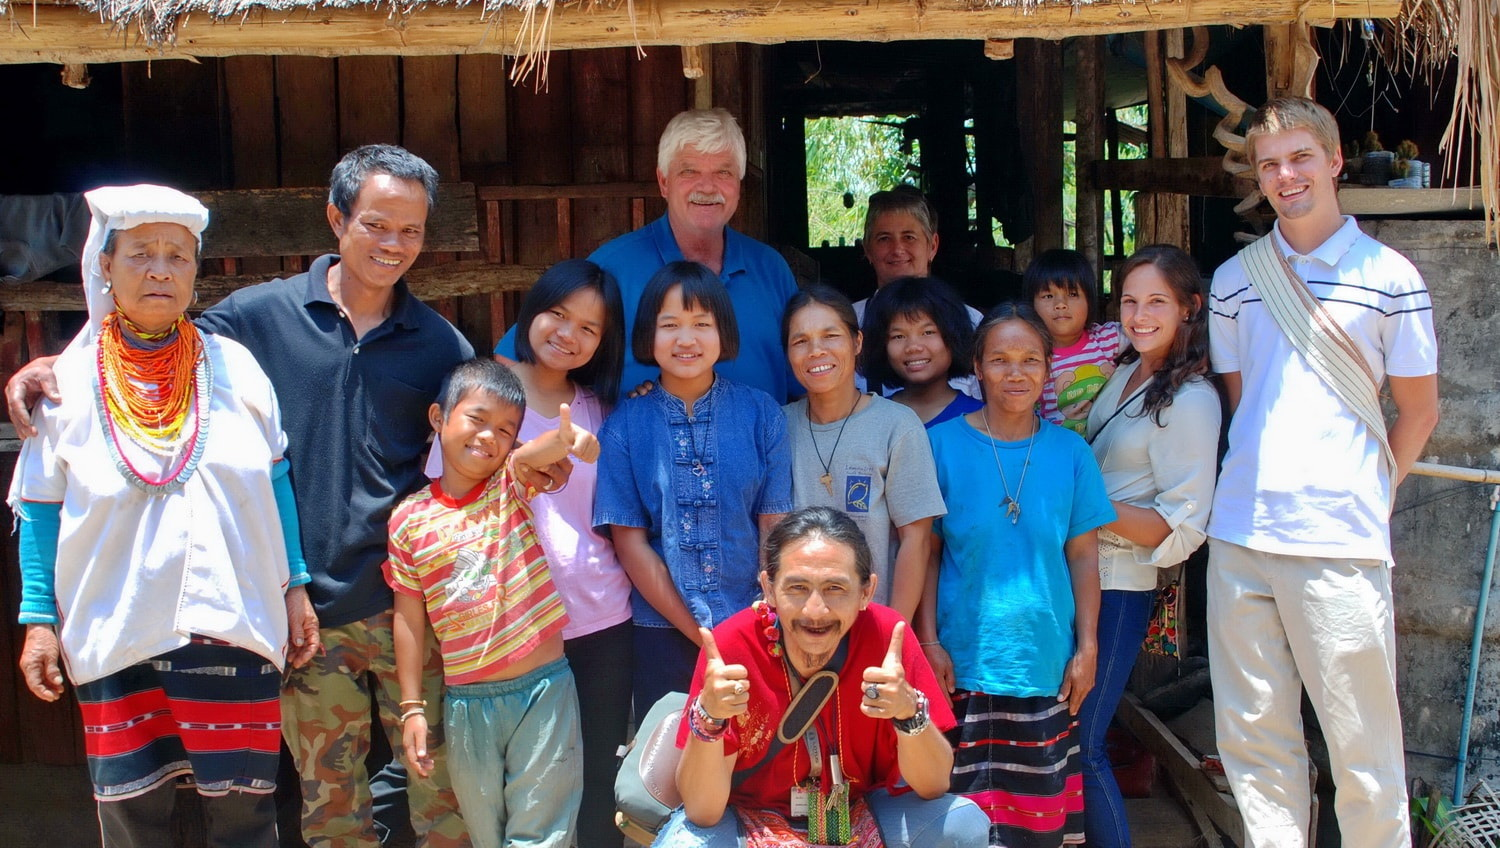 Thailand hilltribe holidays homestay group pic_1500_848_Comp